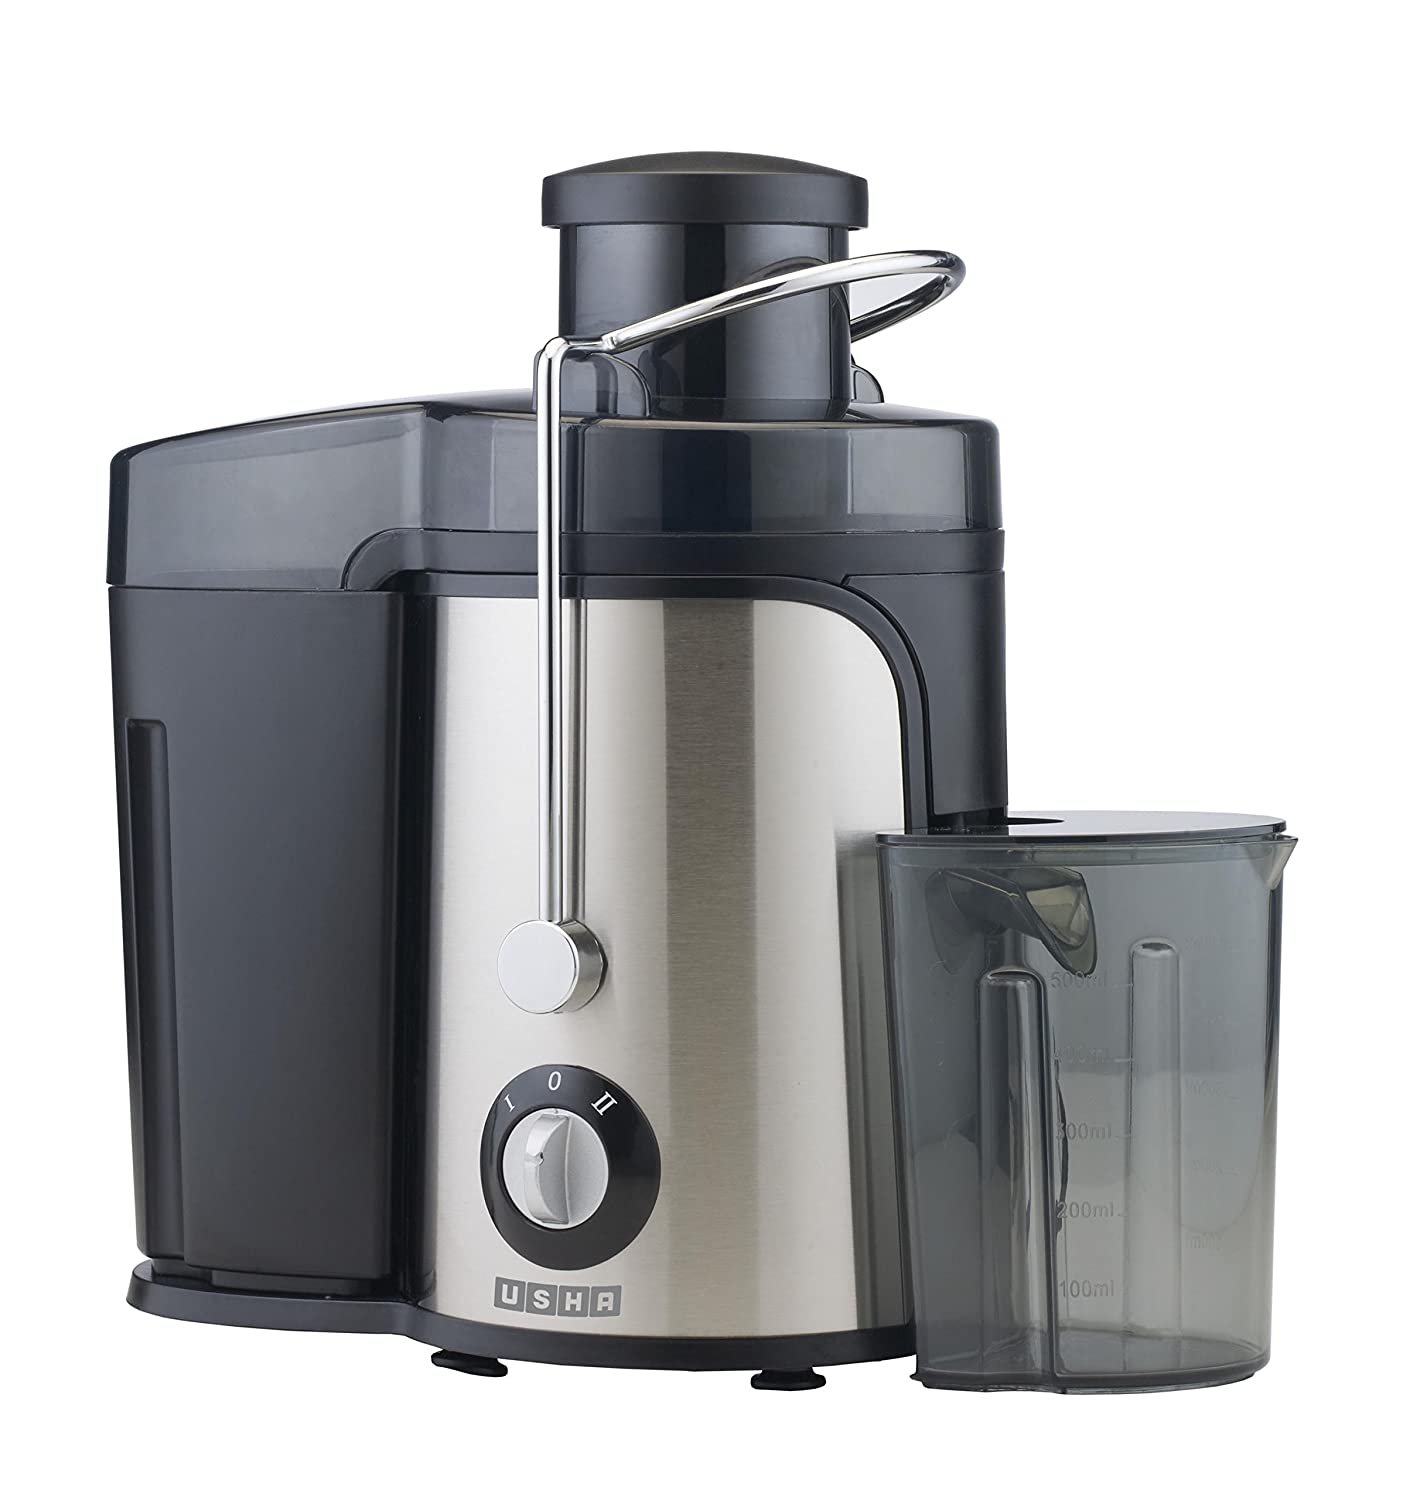 Best Juicers in India 2018 - Reviews And Comparisons